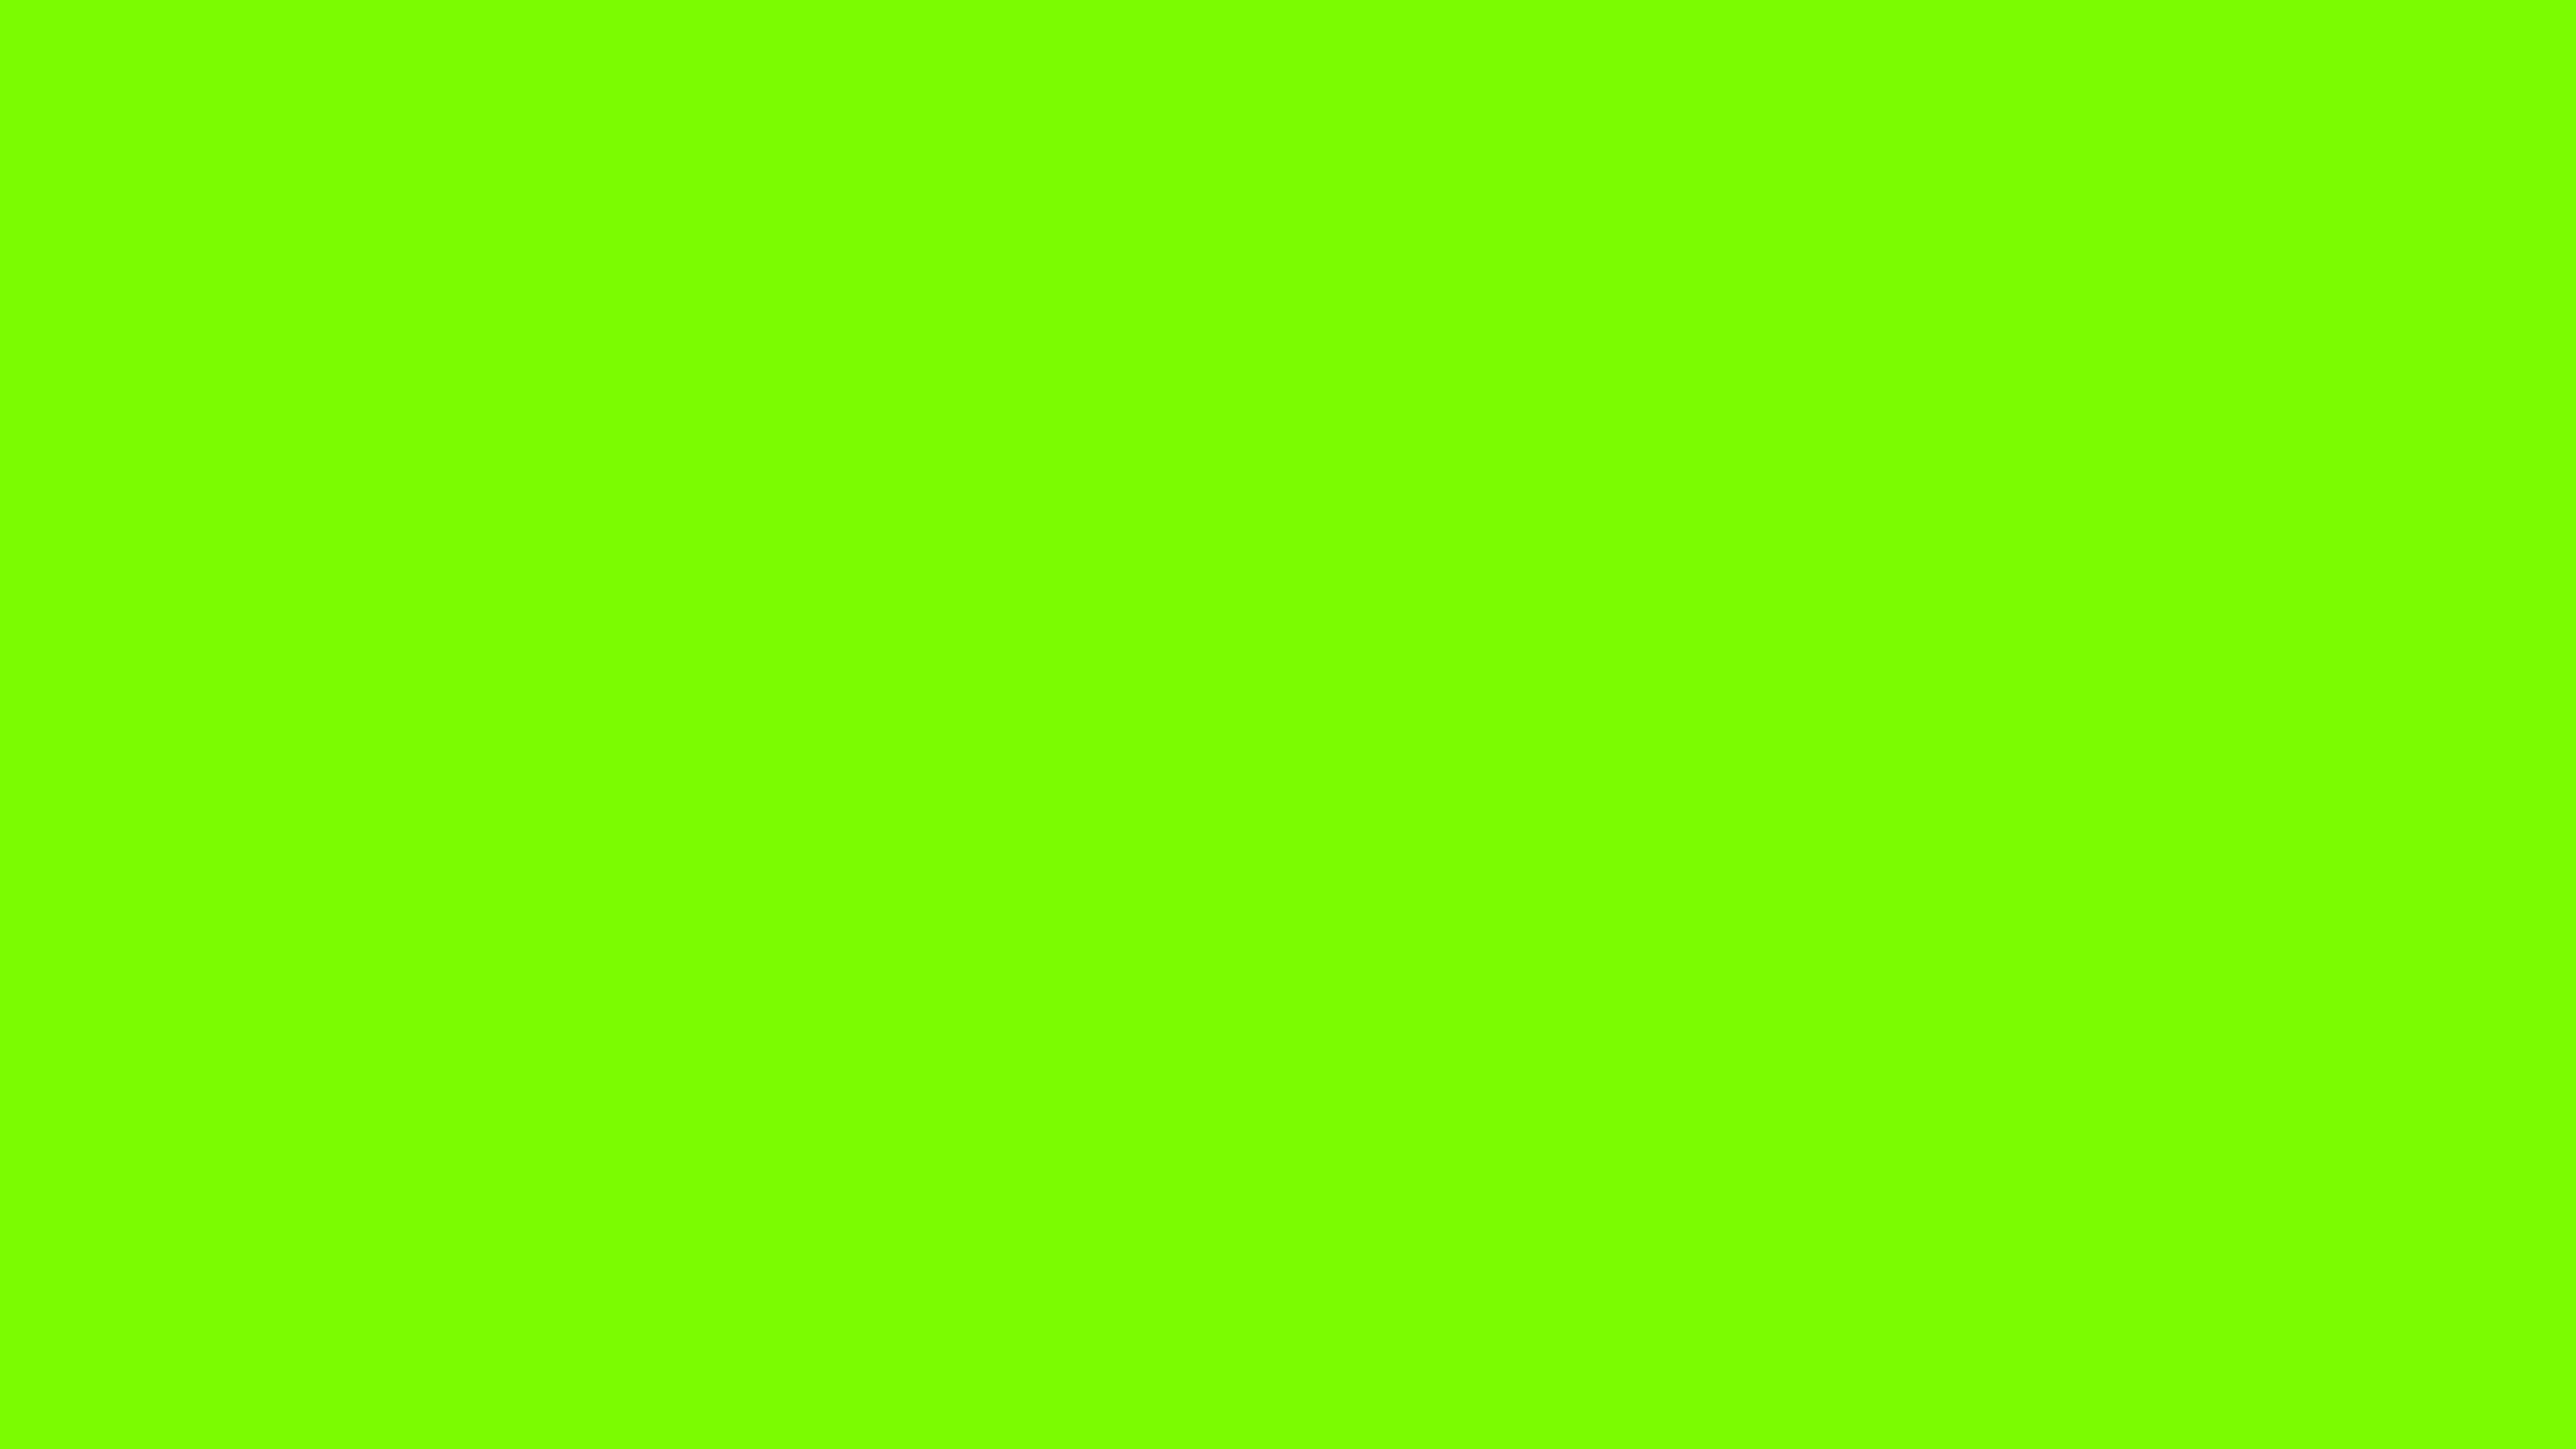 3840x2160 Lawn Green Solid Color Background